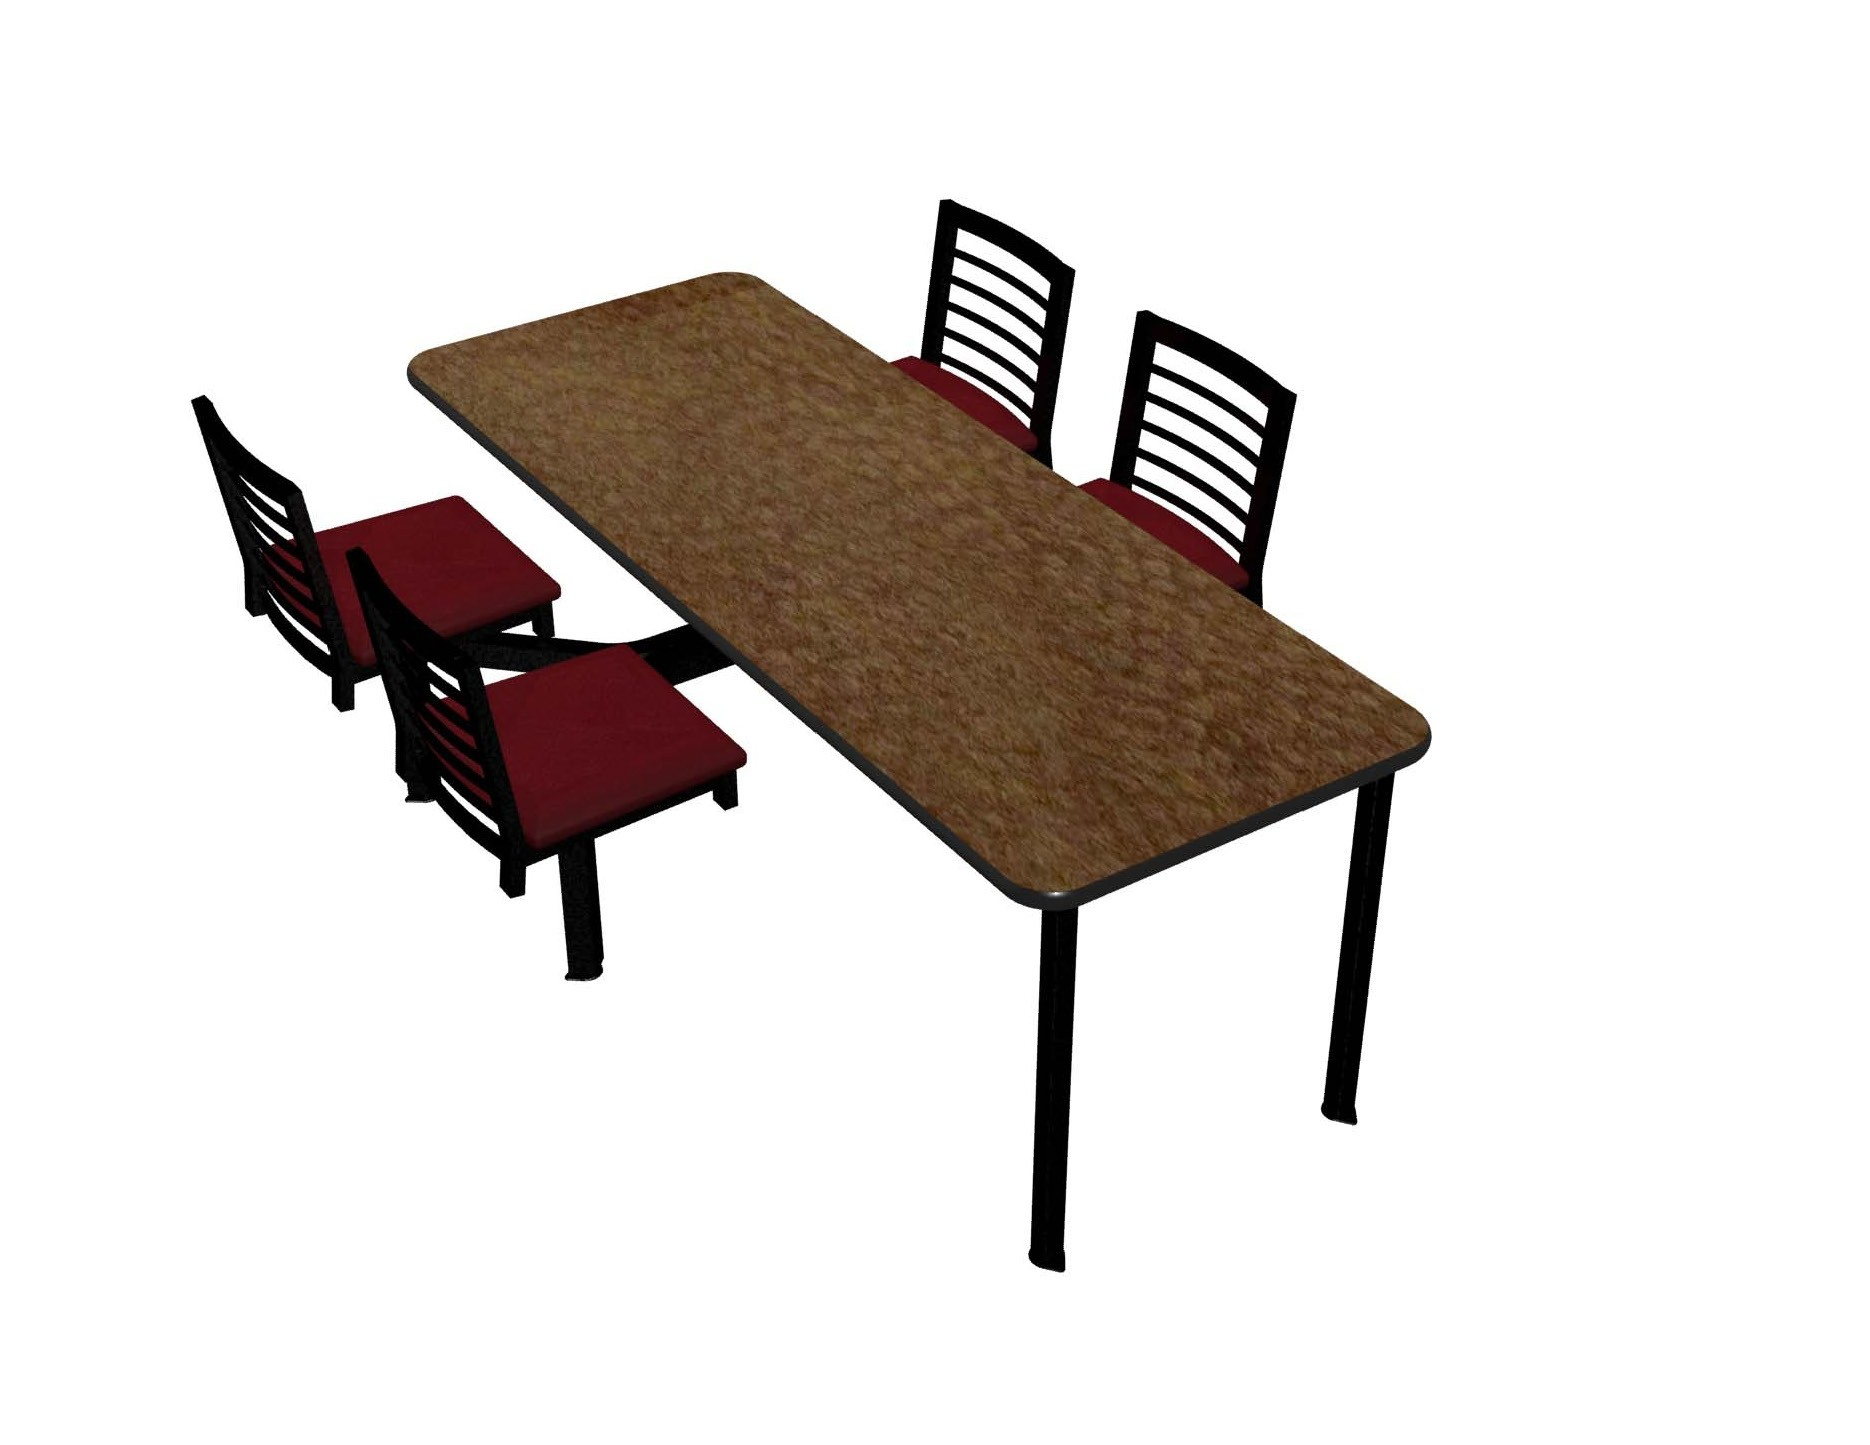 Windswept Bronze laminate table top, Black vinyl edge, Latitude chairhead with New Burgundy seat